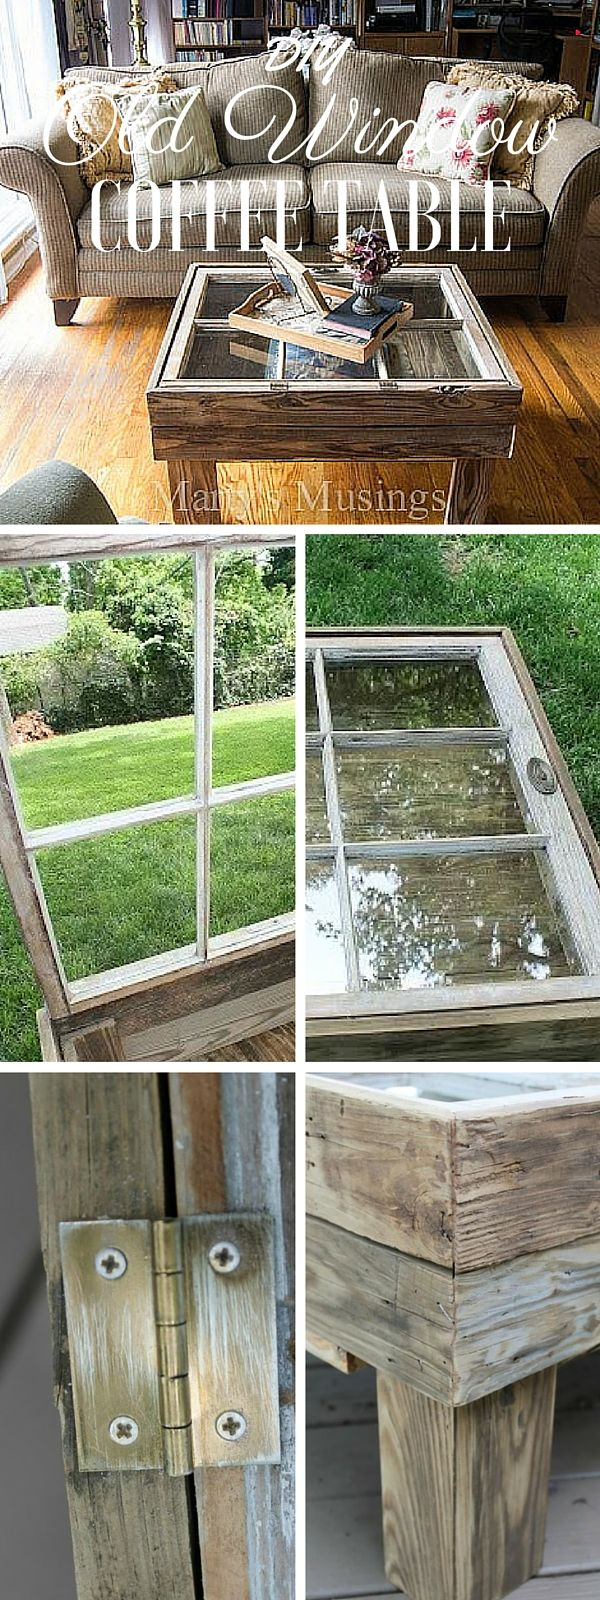 Check out the tutorial: #DIY Repurposed Window Coffee Table @istandarddesign